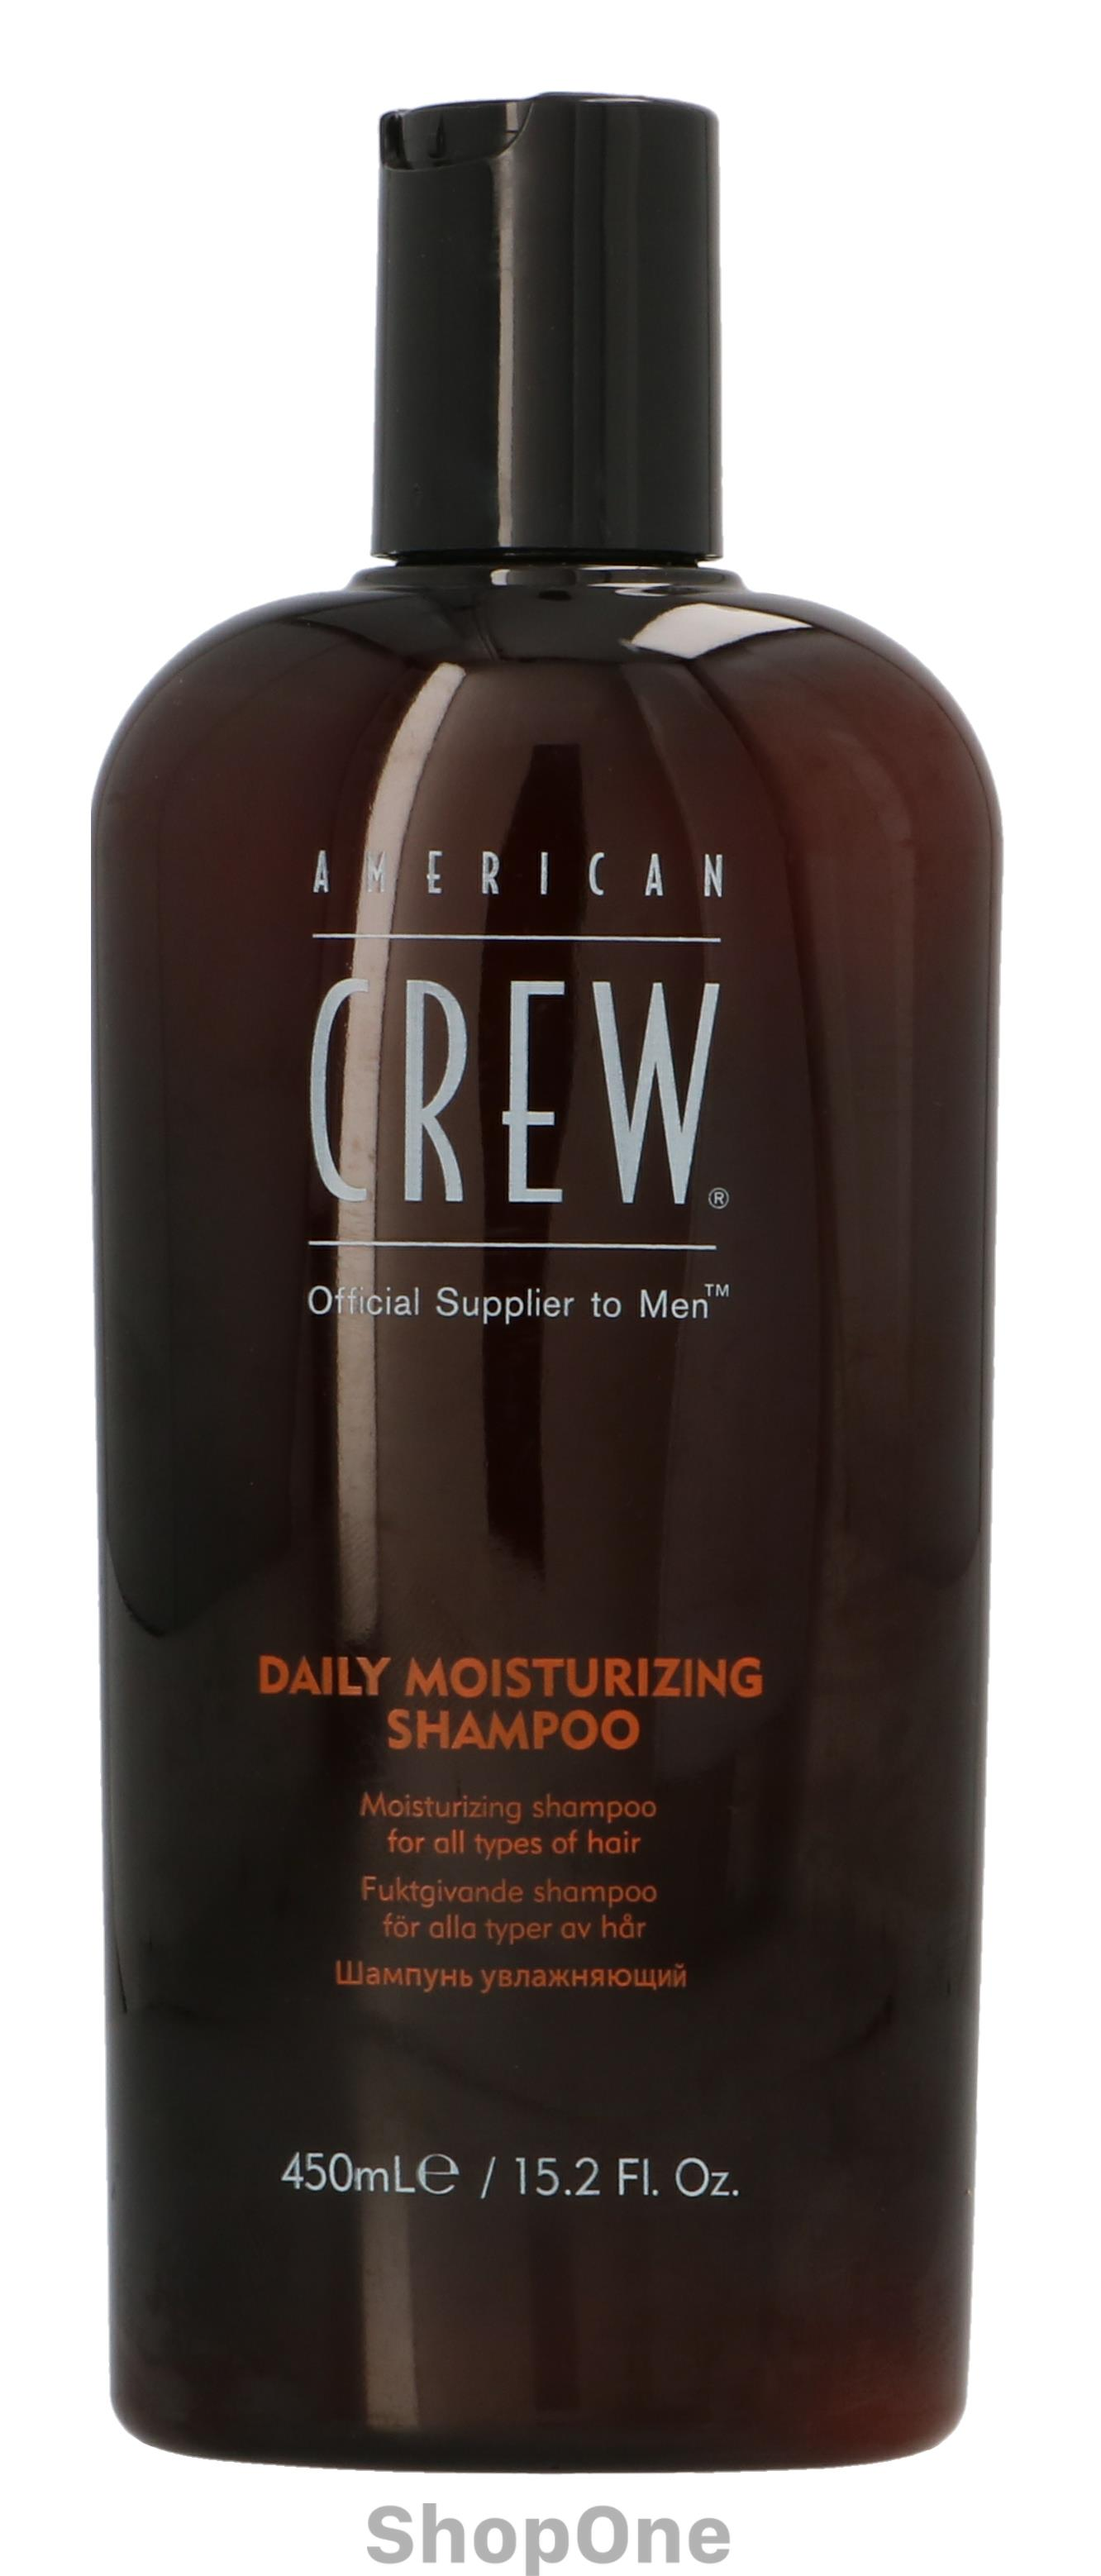 Image of   Daily Moisturizing Shampoo 450 ml fra American Crew